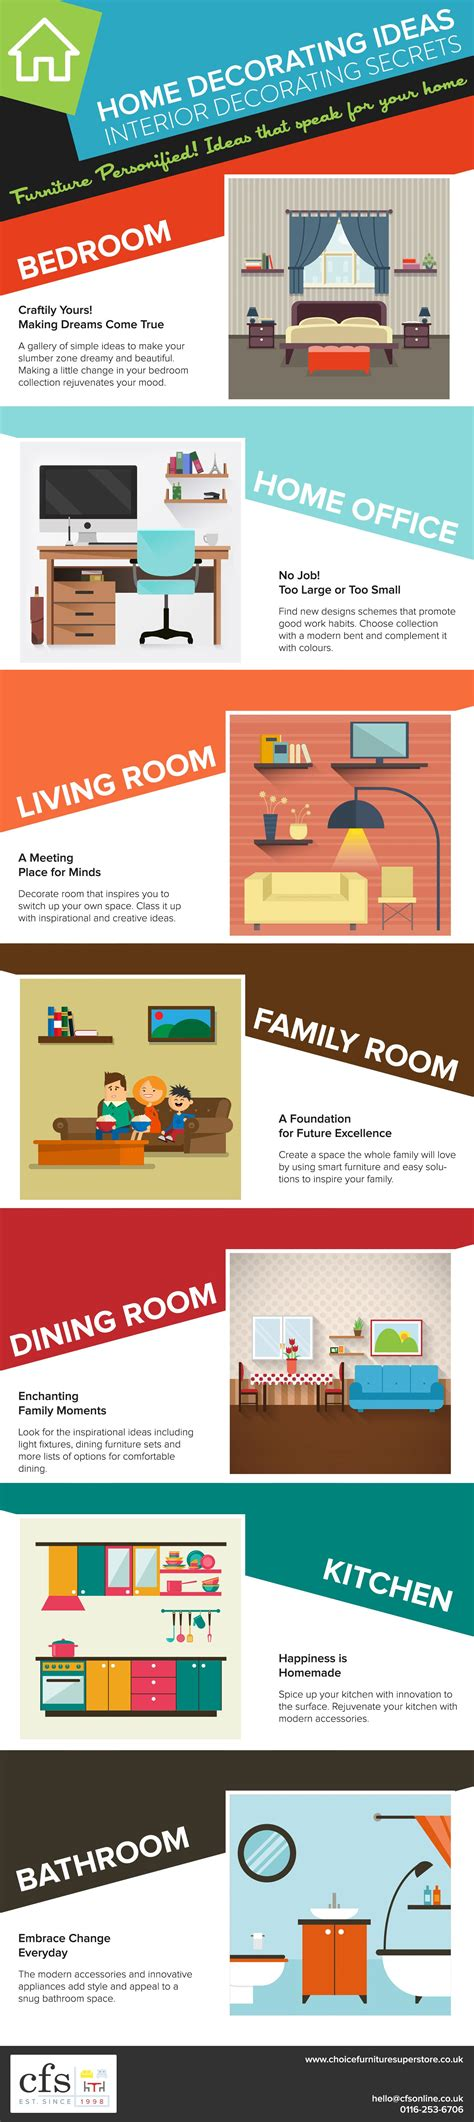 home decor infographic home decorating ideas infographic cfs uk